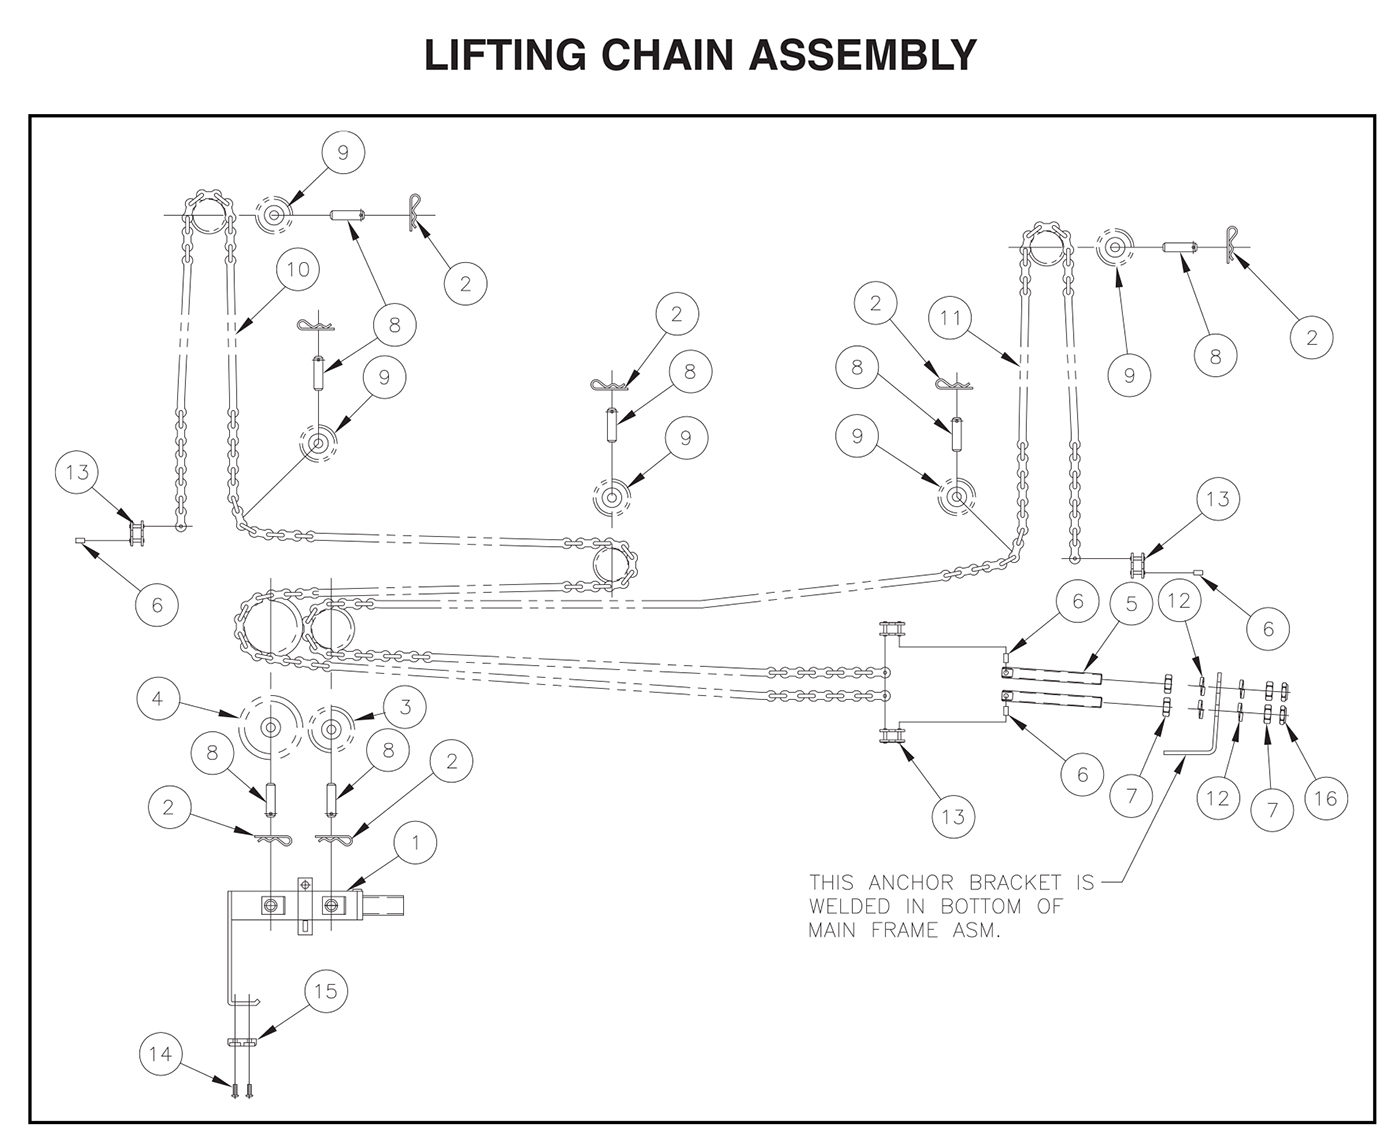 TVLR 125/16/125A/16A Lifting Chain Assembly Diagram